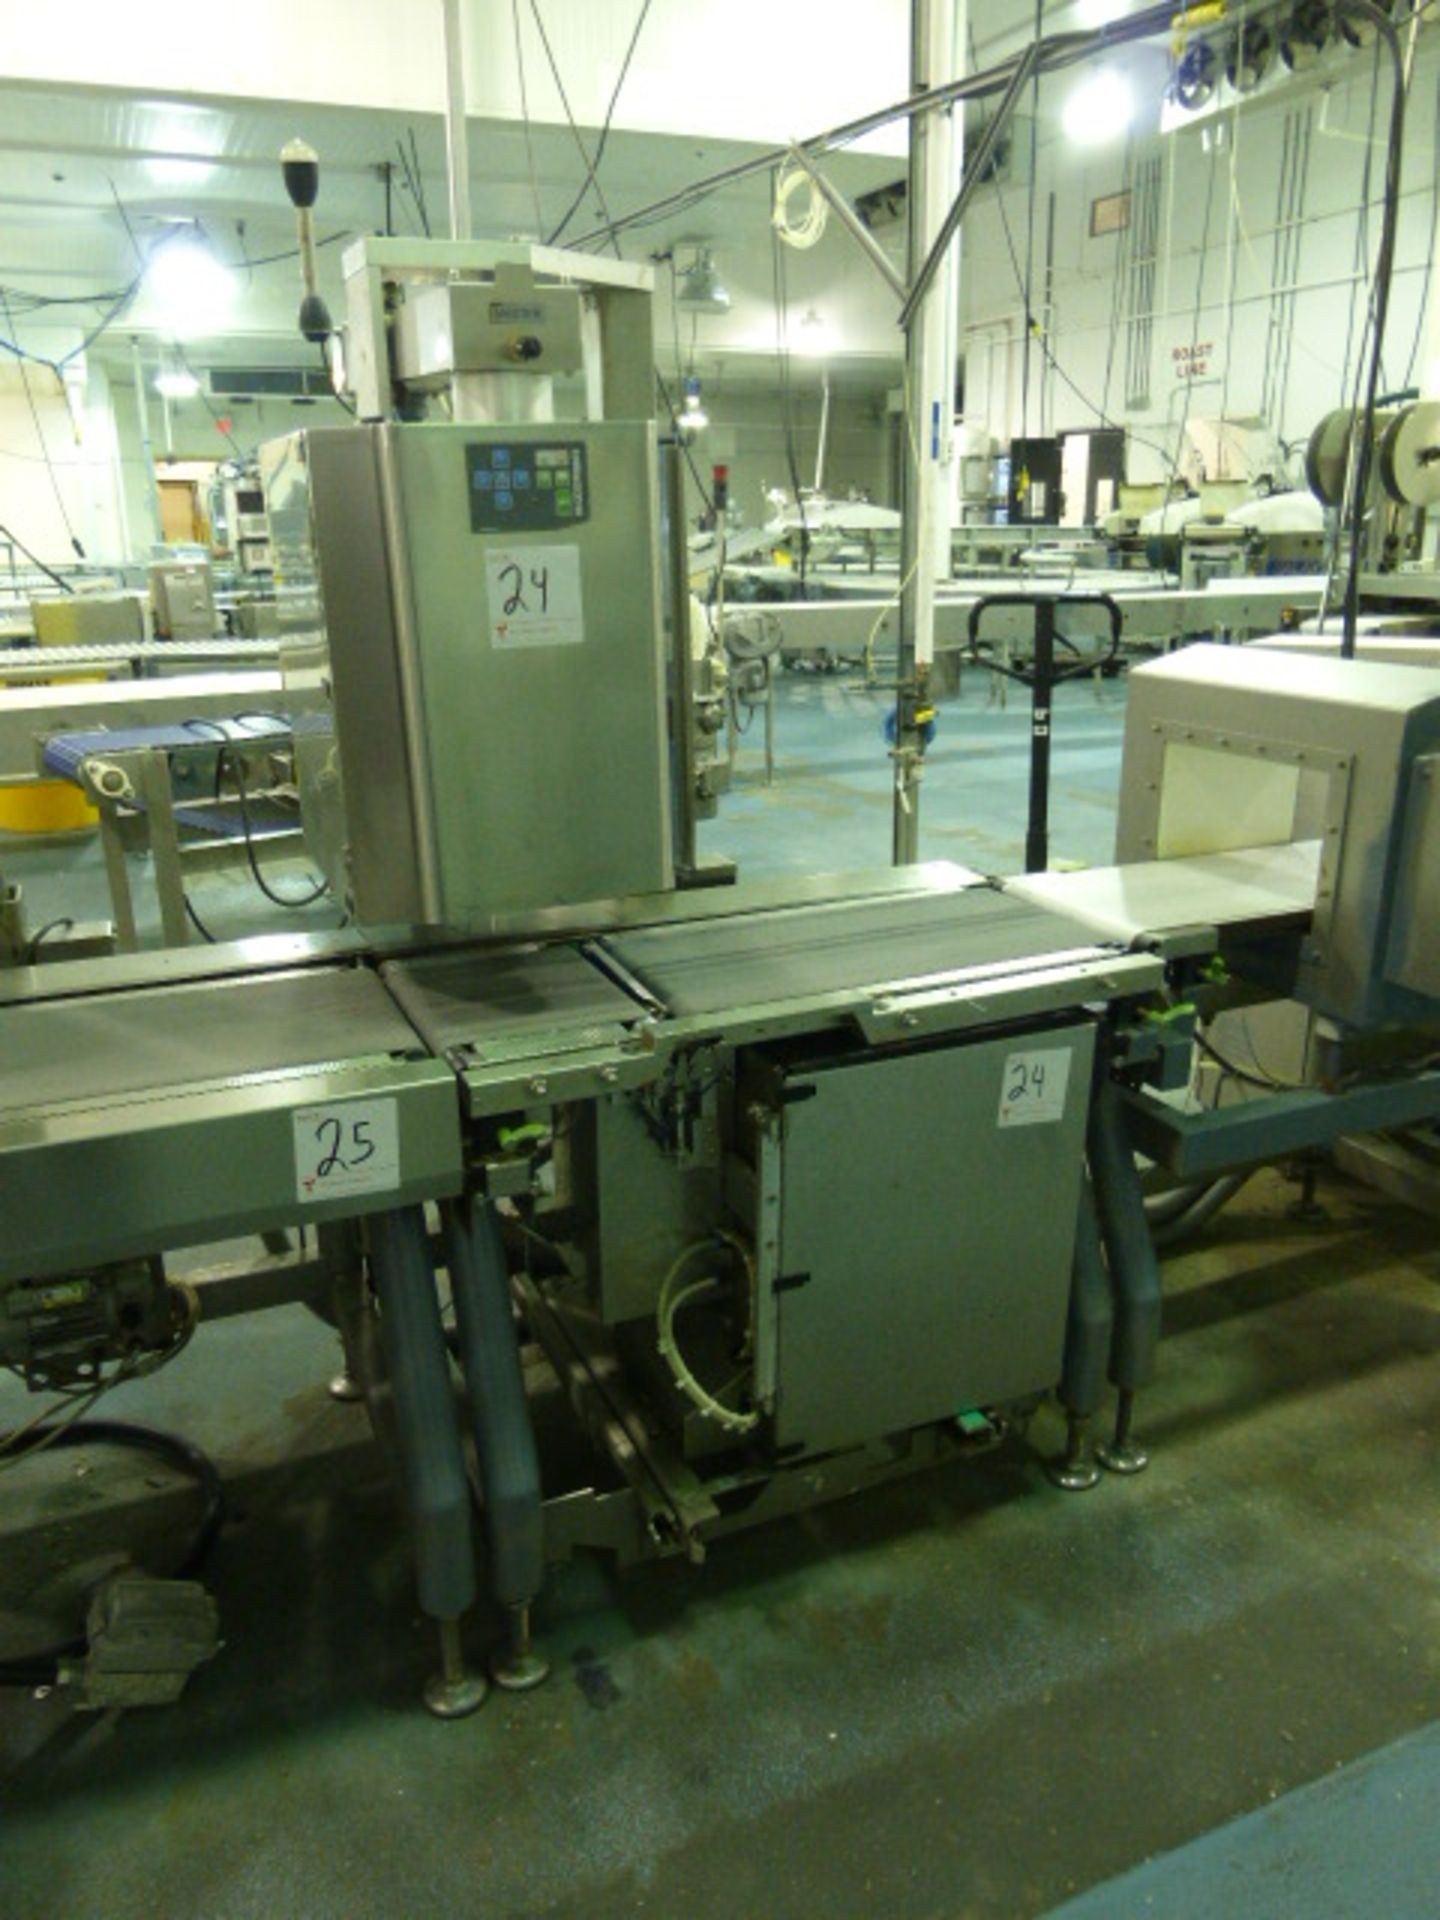 Lot 24 - Bizerba labeler (top and bottom), p/n 5484701002, ser. no.s 10835196 and 10835197 c/w conveyor/